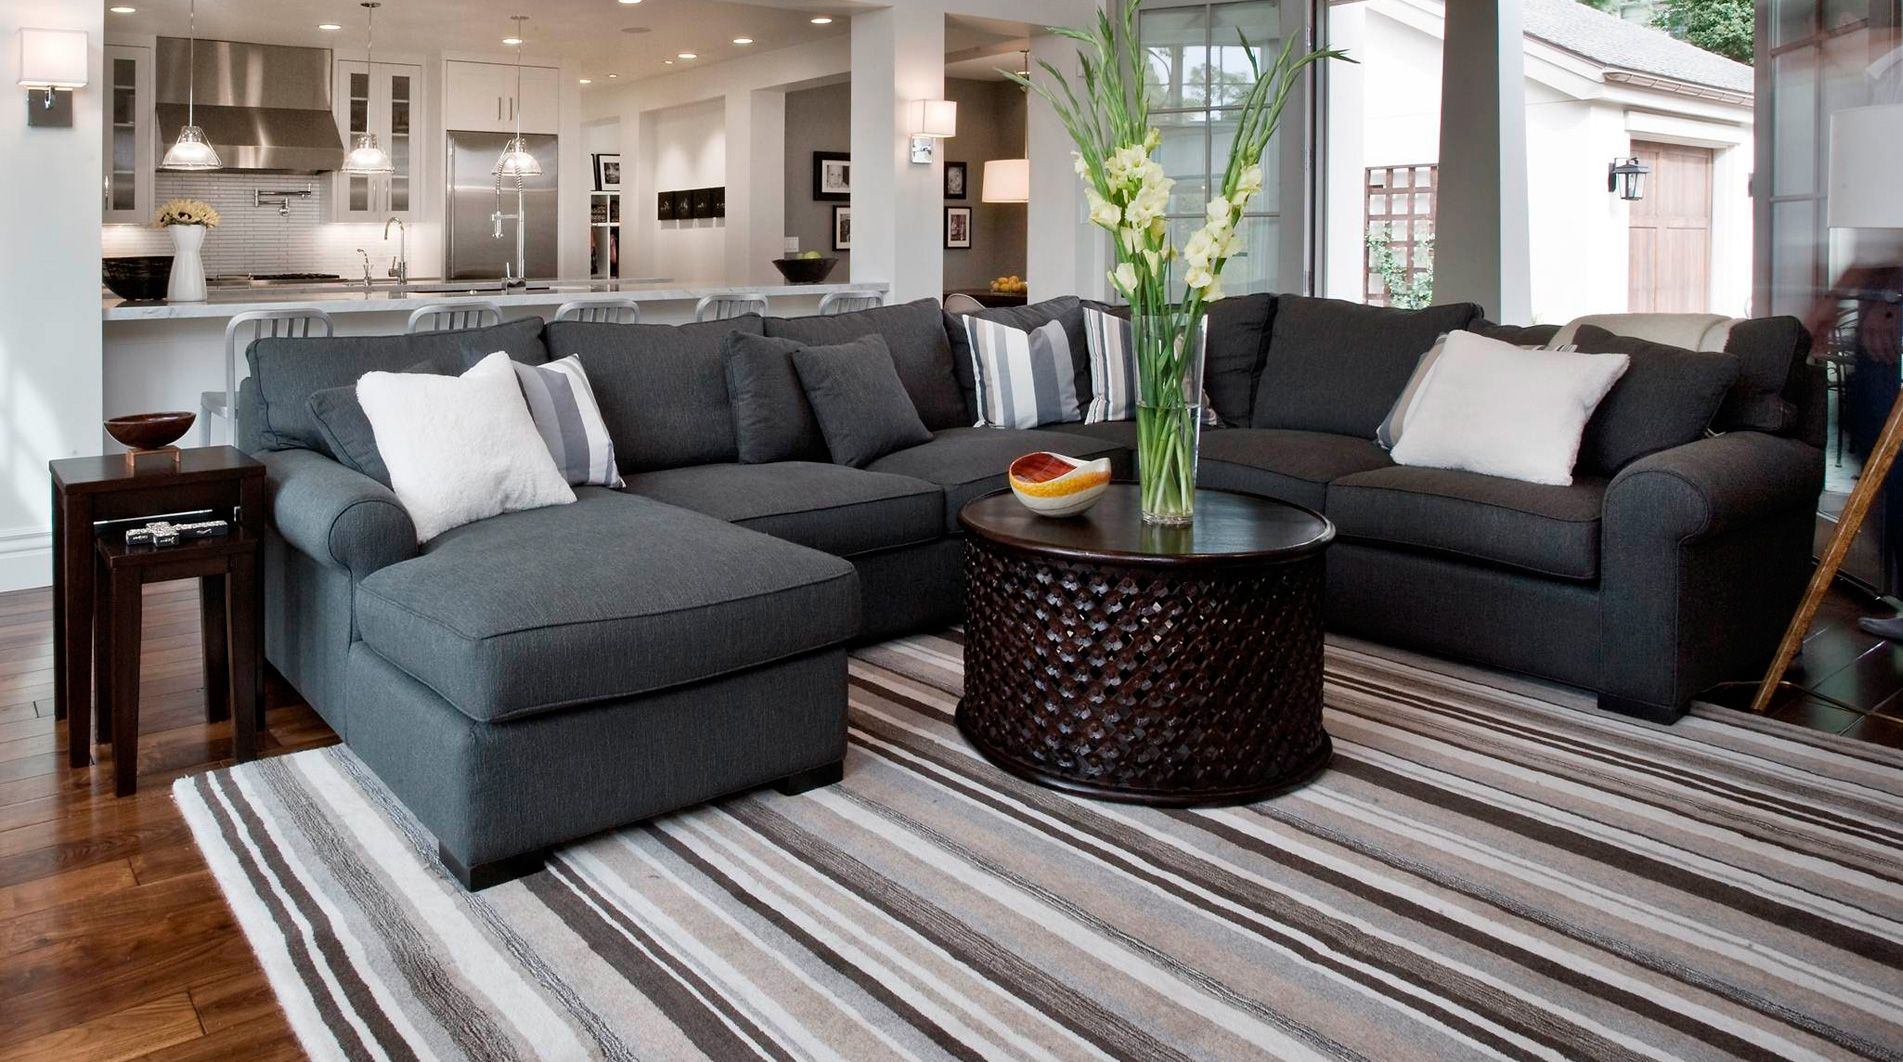 Best Love The Charcoal Gray Sectional And Cocktail Table 400 x 300